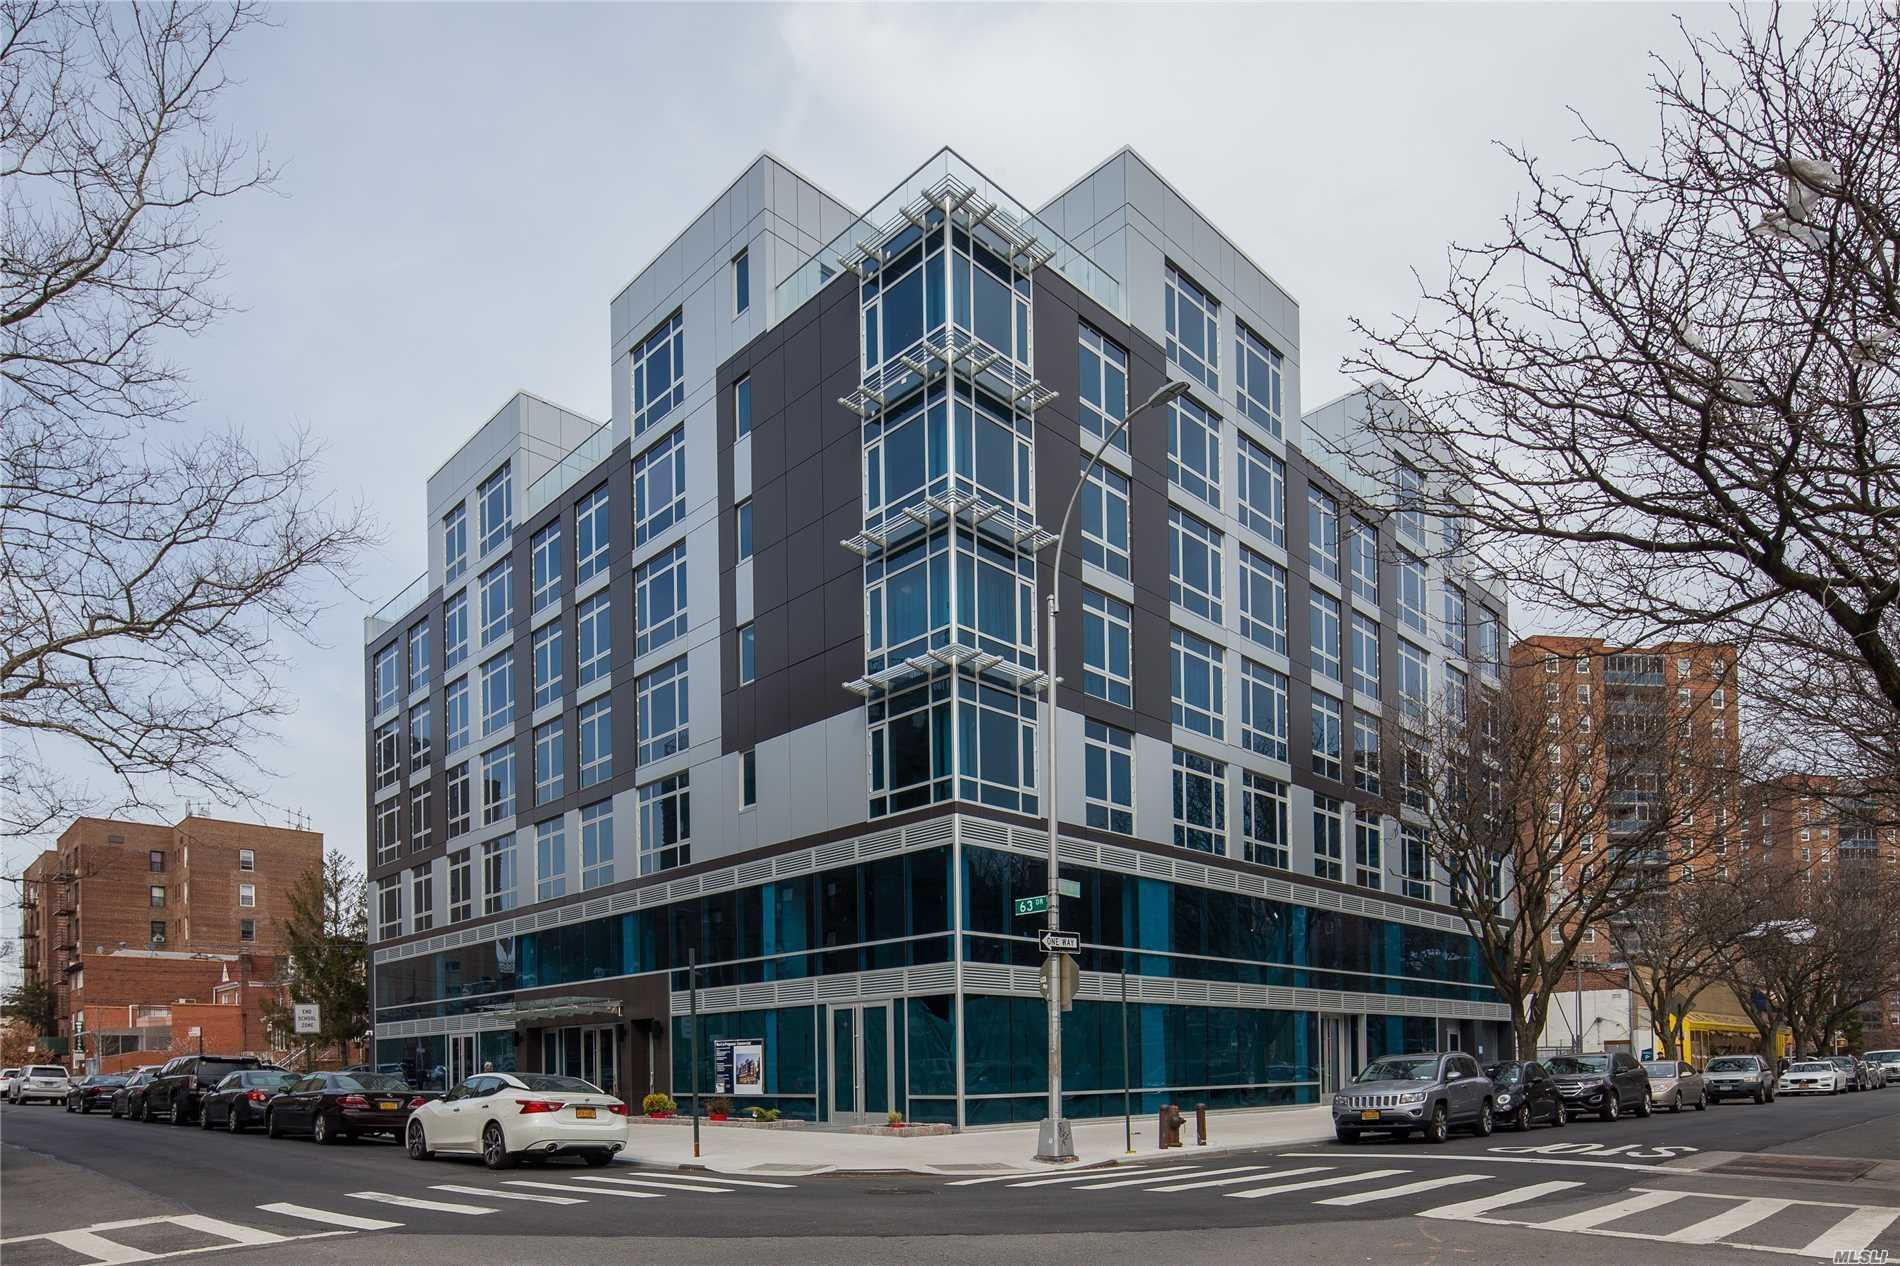 Brand New Condo With 15 Years Tax Abatement, 1 Block To Subway Station, Queens Blvd, Shopping Mall ........Modern Design With Top Line Appliances